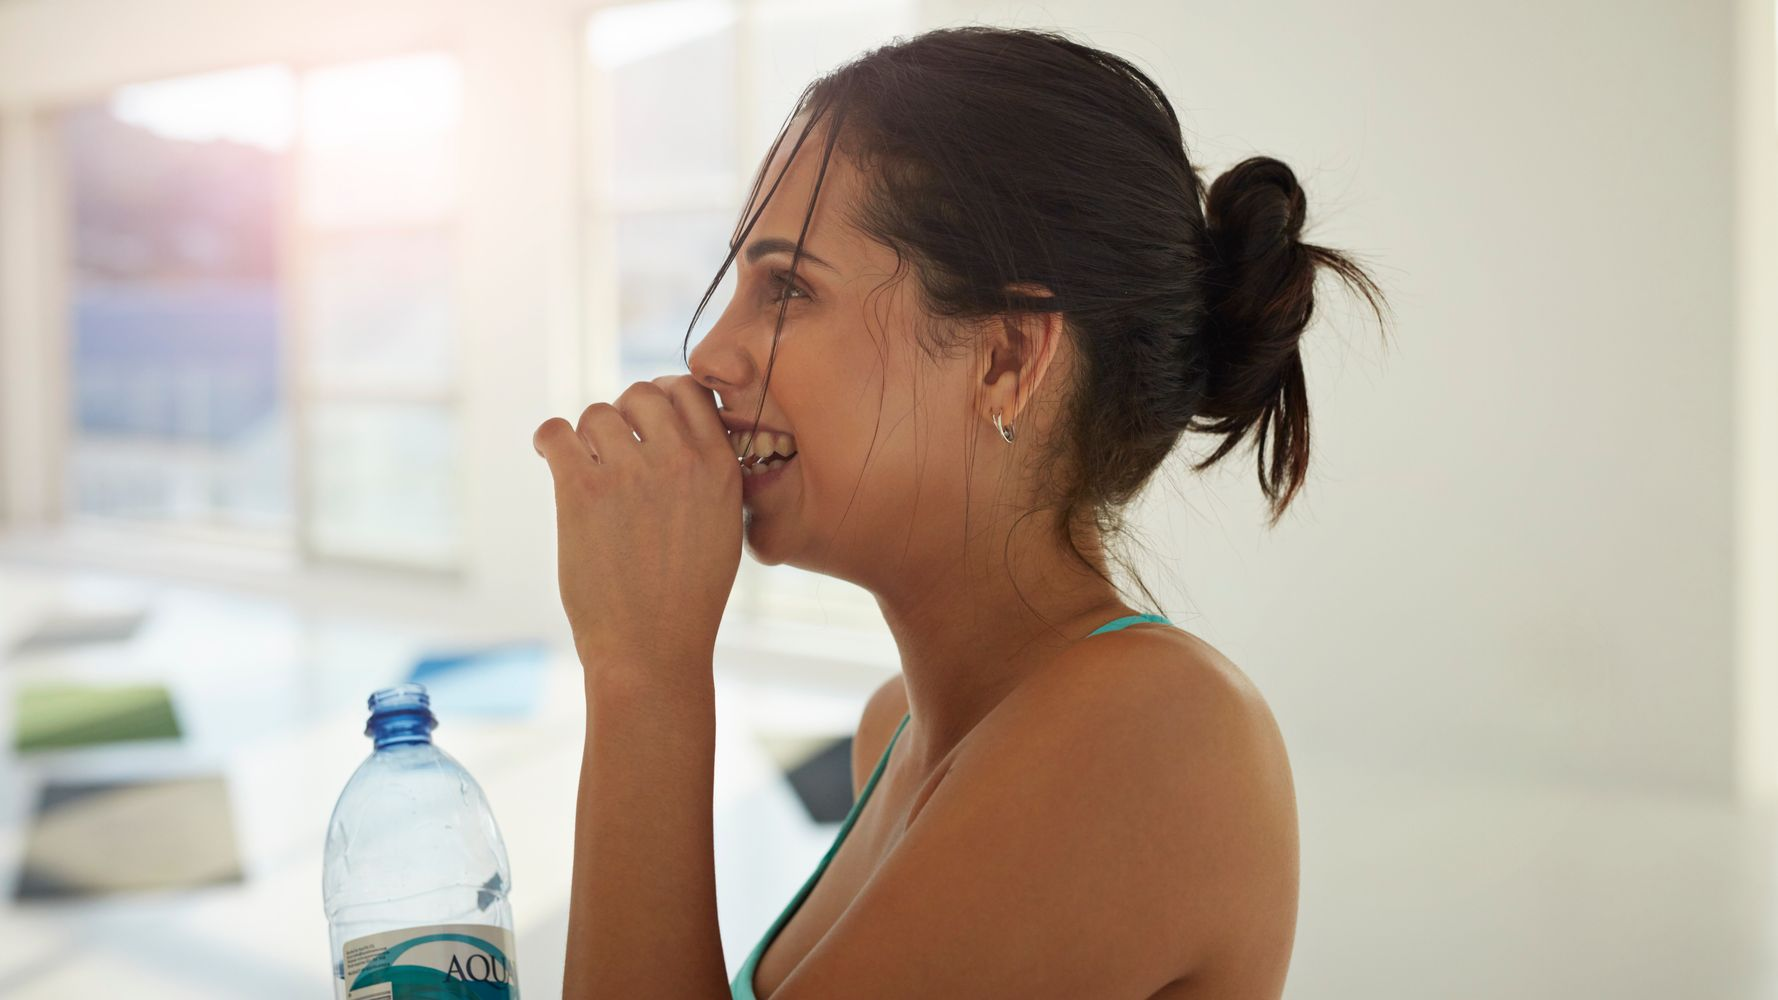 The Best Ways To Get Rid Of Hiccups, According To Experts